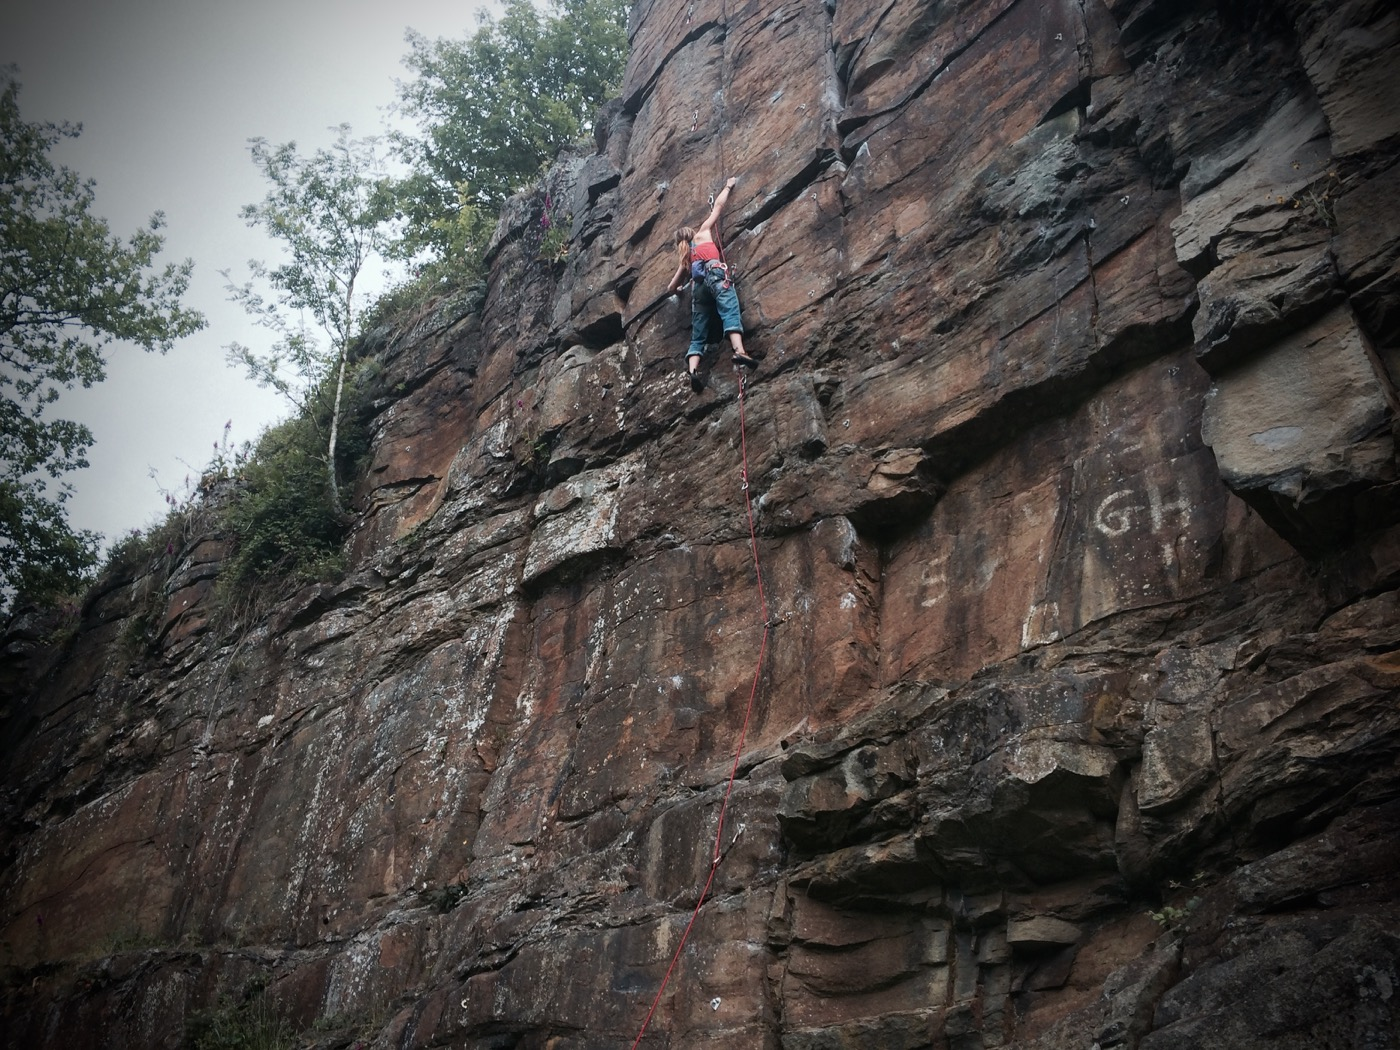 Georgia Townend Climbing at Terpentwys